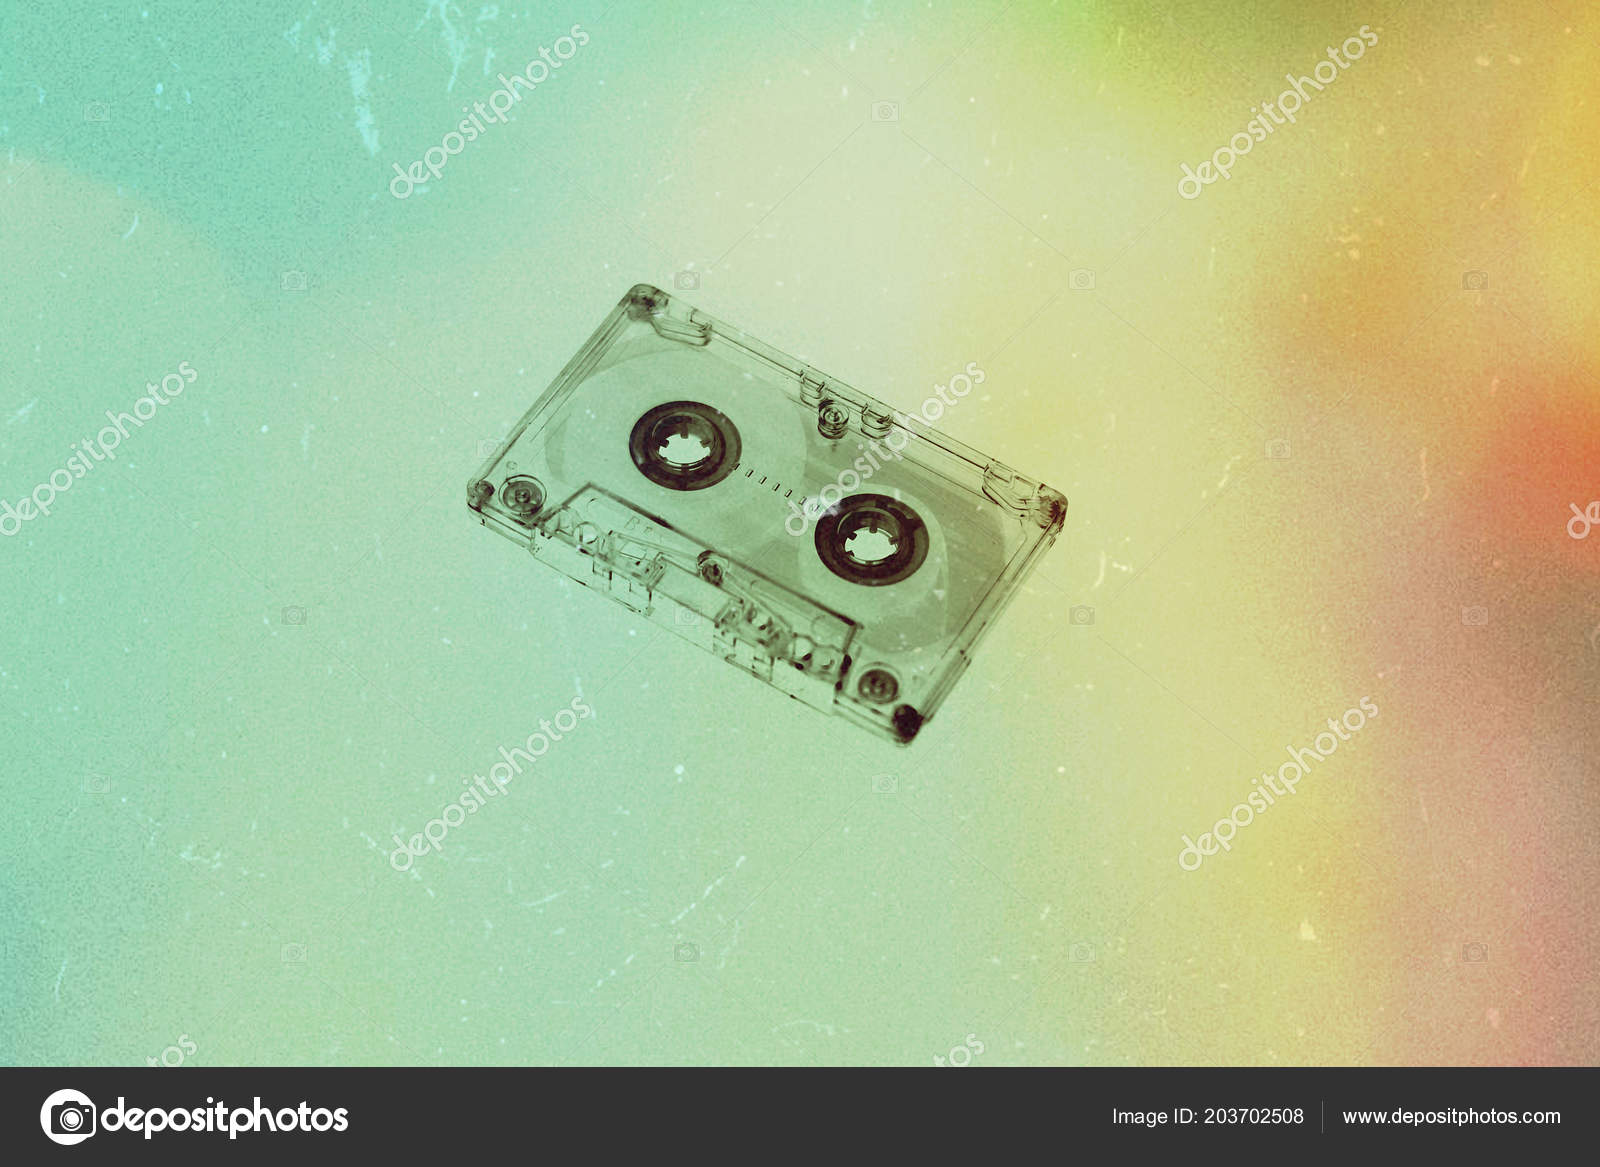 Audio Cassette Background Wallpaper Textures Retro Old Vintage